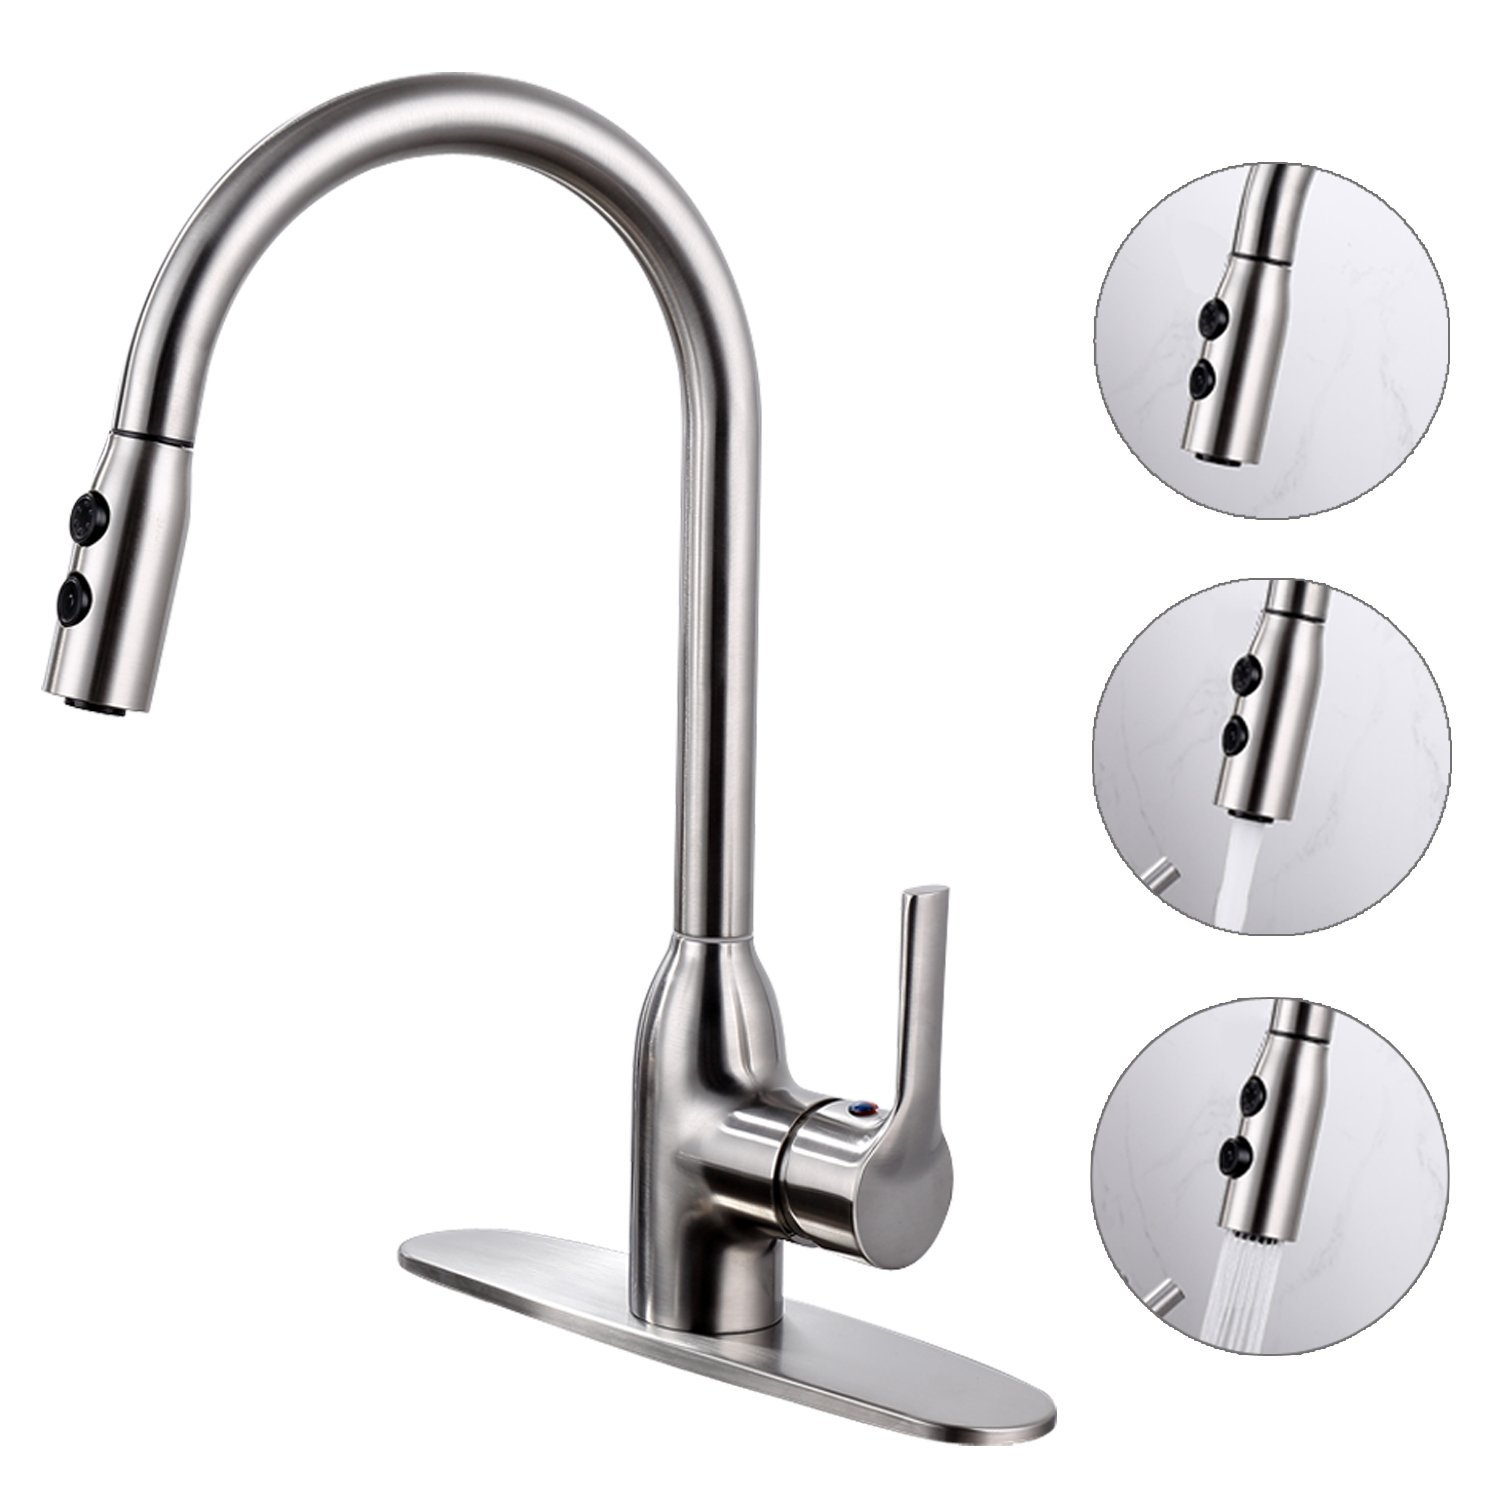 Abrantes Kitchen Sink Faucet with Pull Out Sprayer